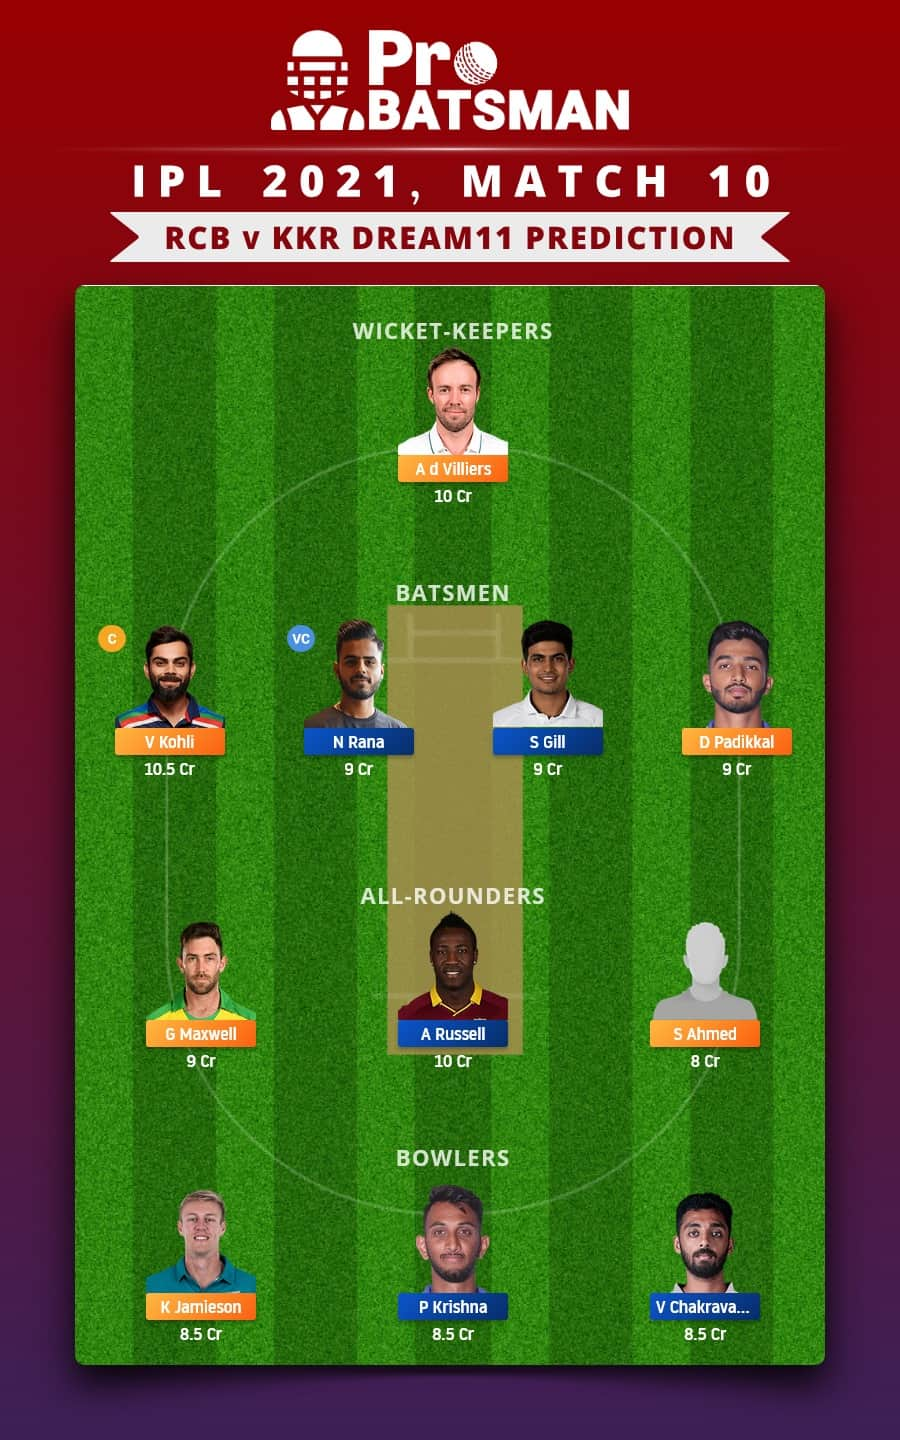 RCB vs KKR Dream11 Fantasy Team Prediction